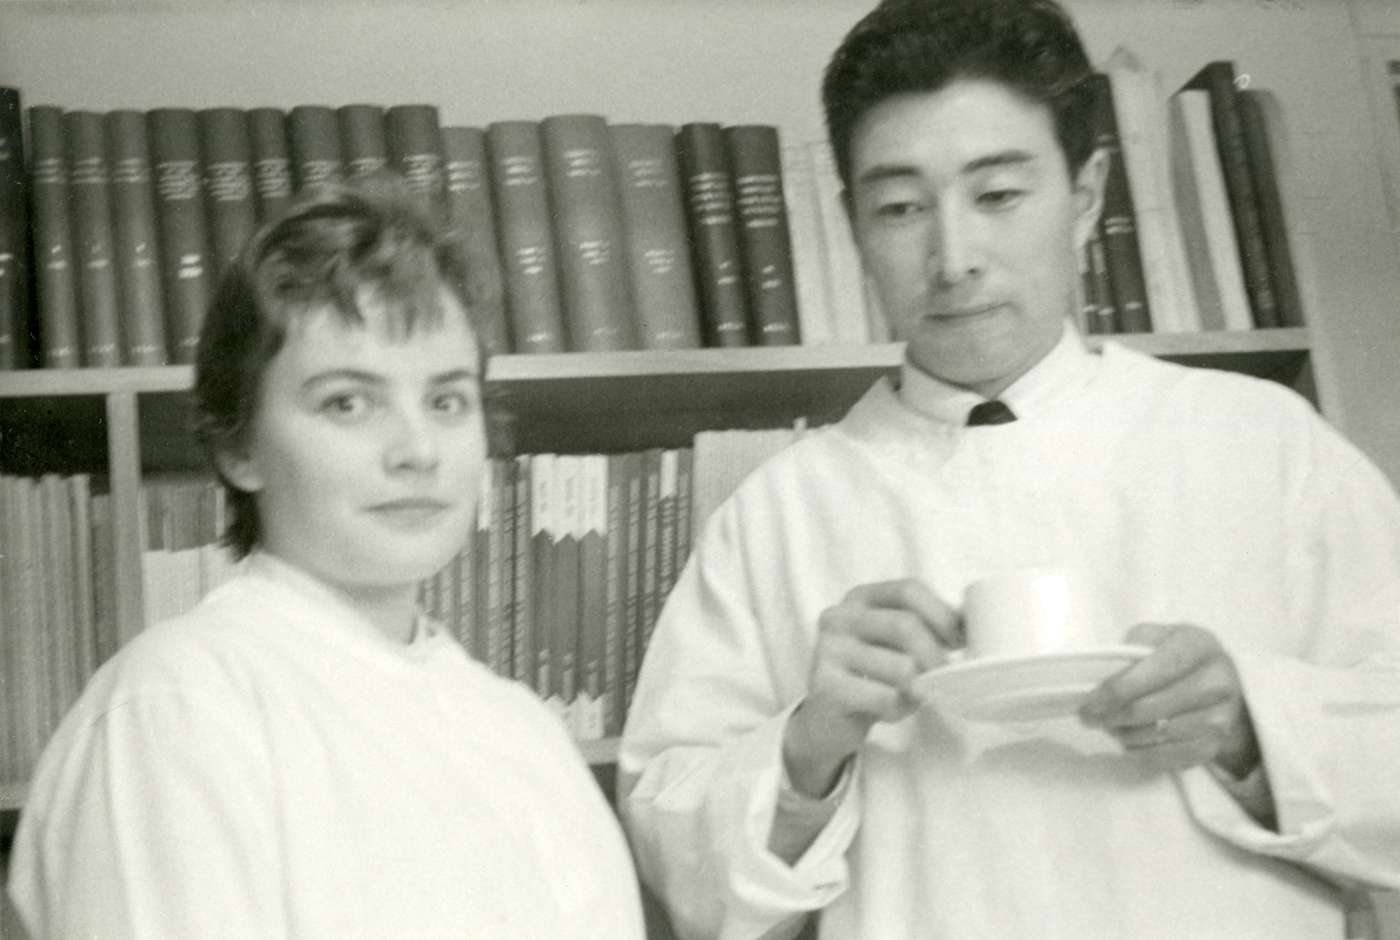 Black and white photograph, both wear lab gowns and stand in an office, Ishidate holds a tea cup and saucer.